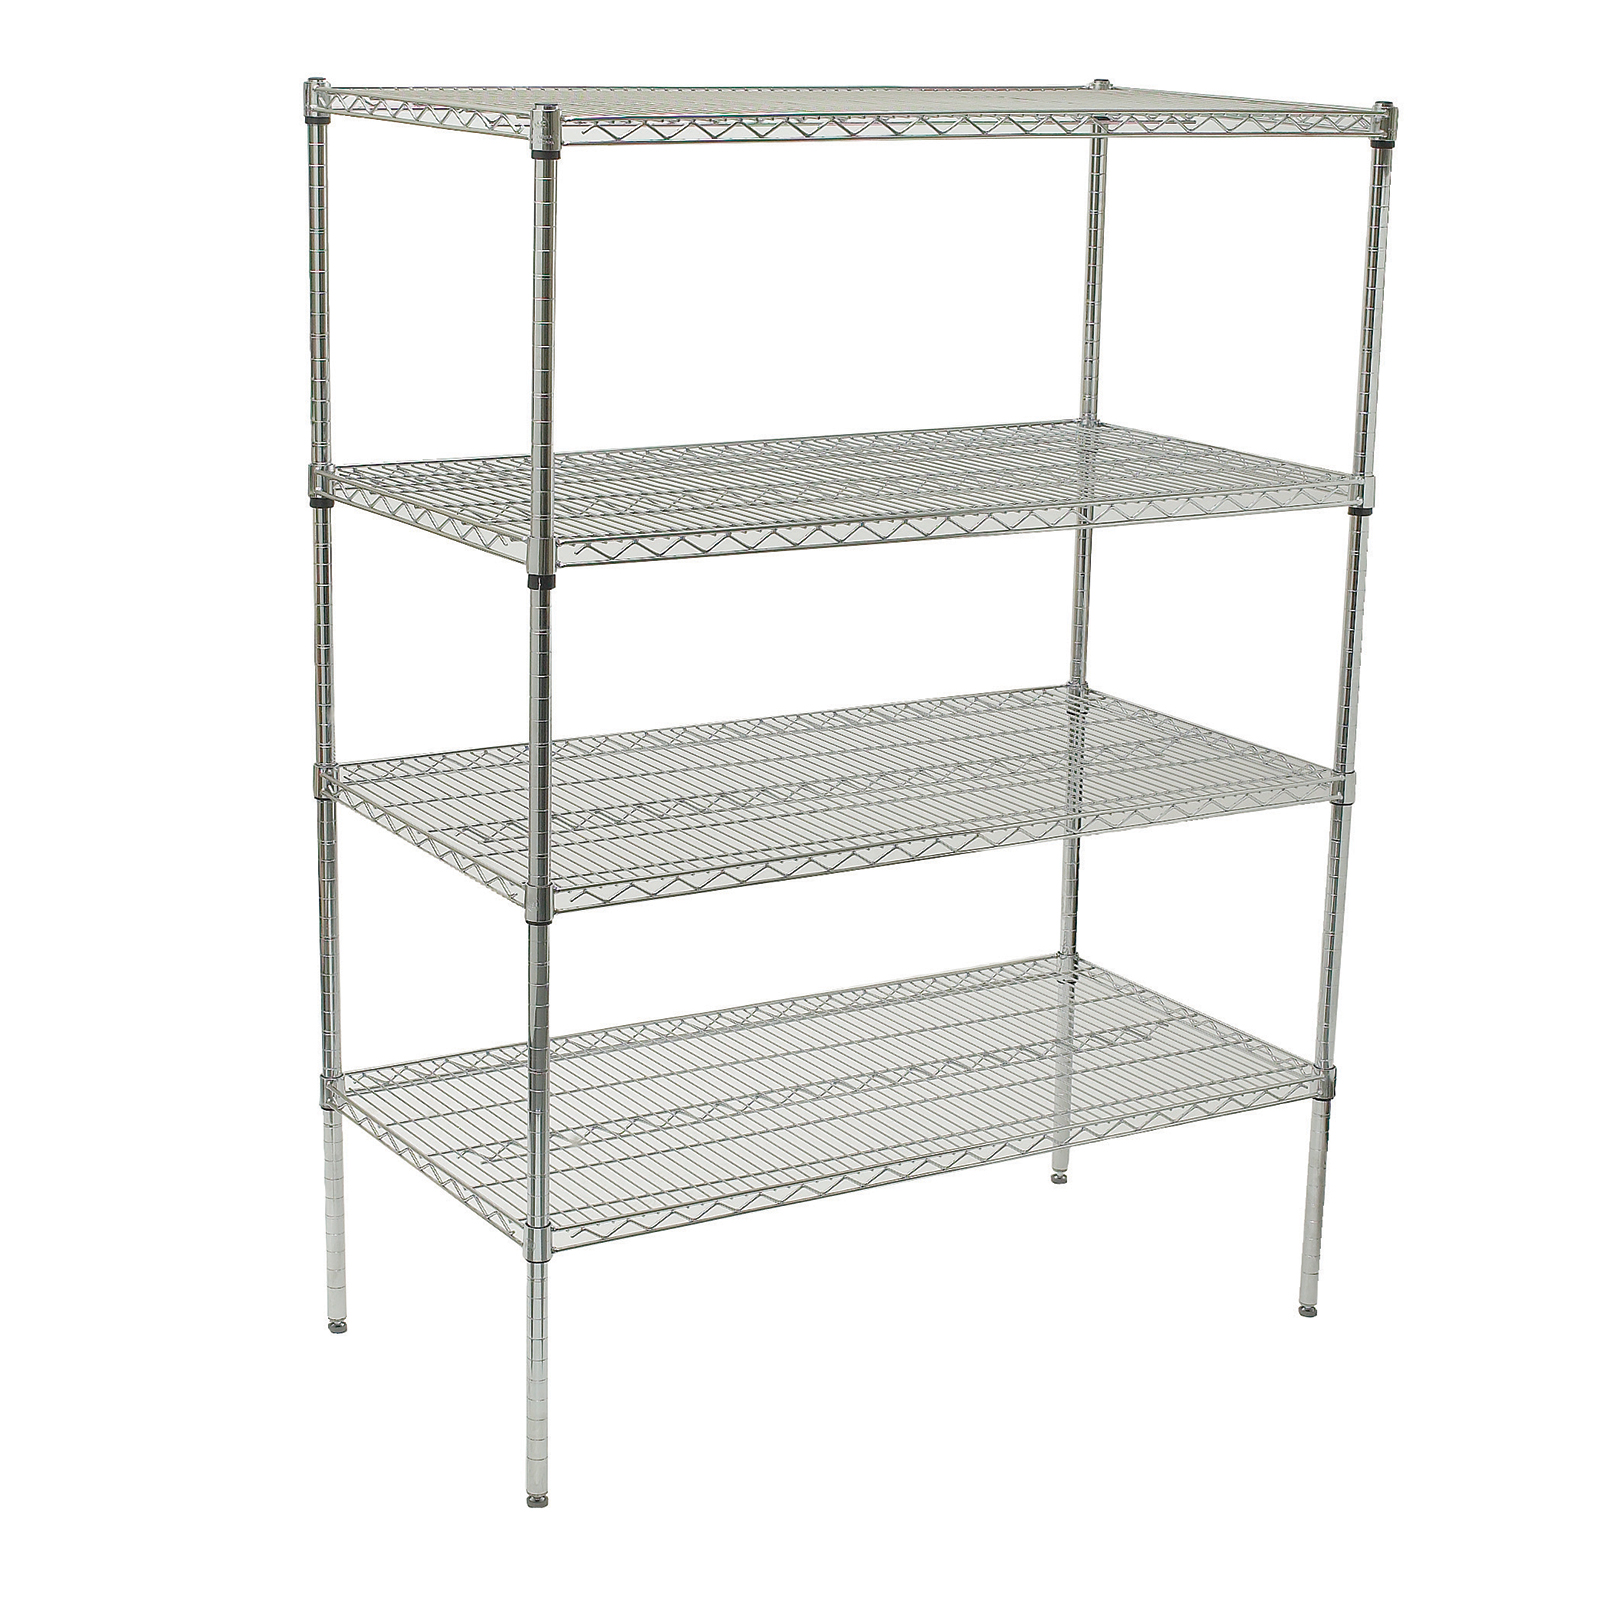 Winco VCS-2448 shelving unit, wire